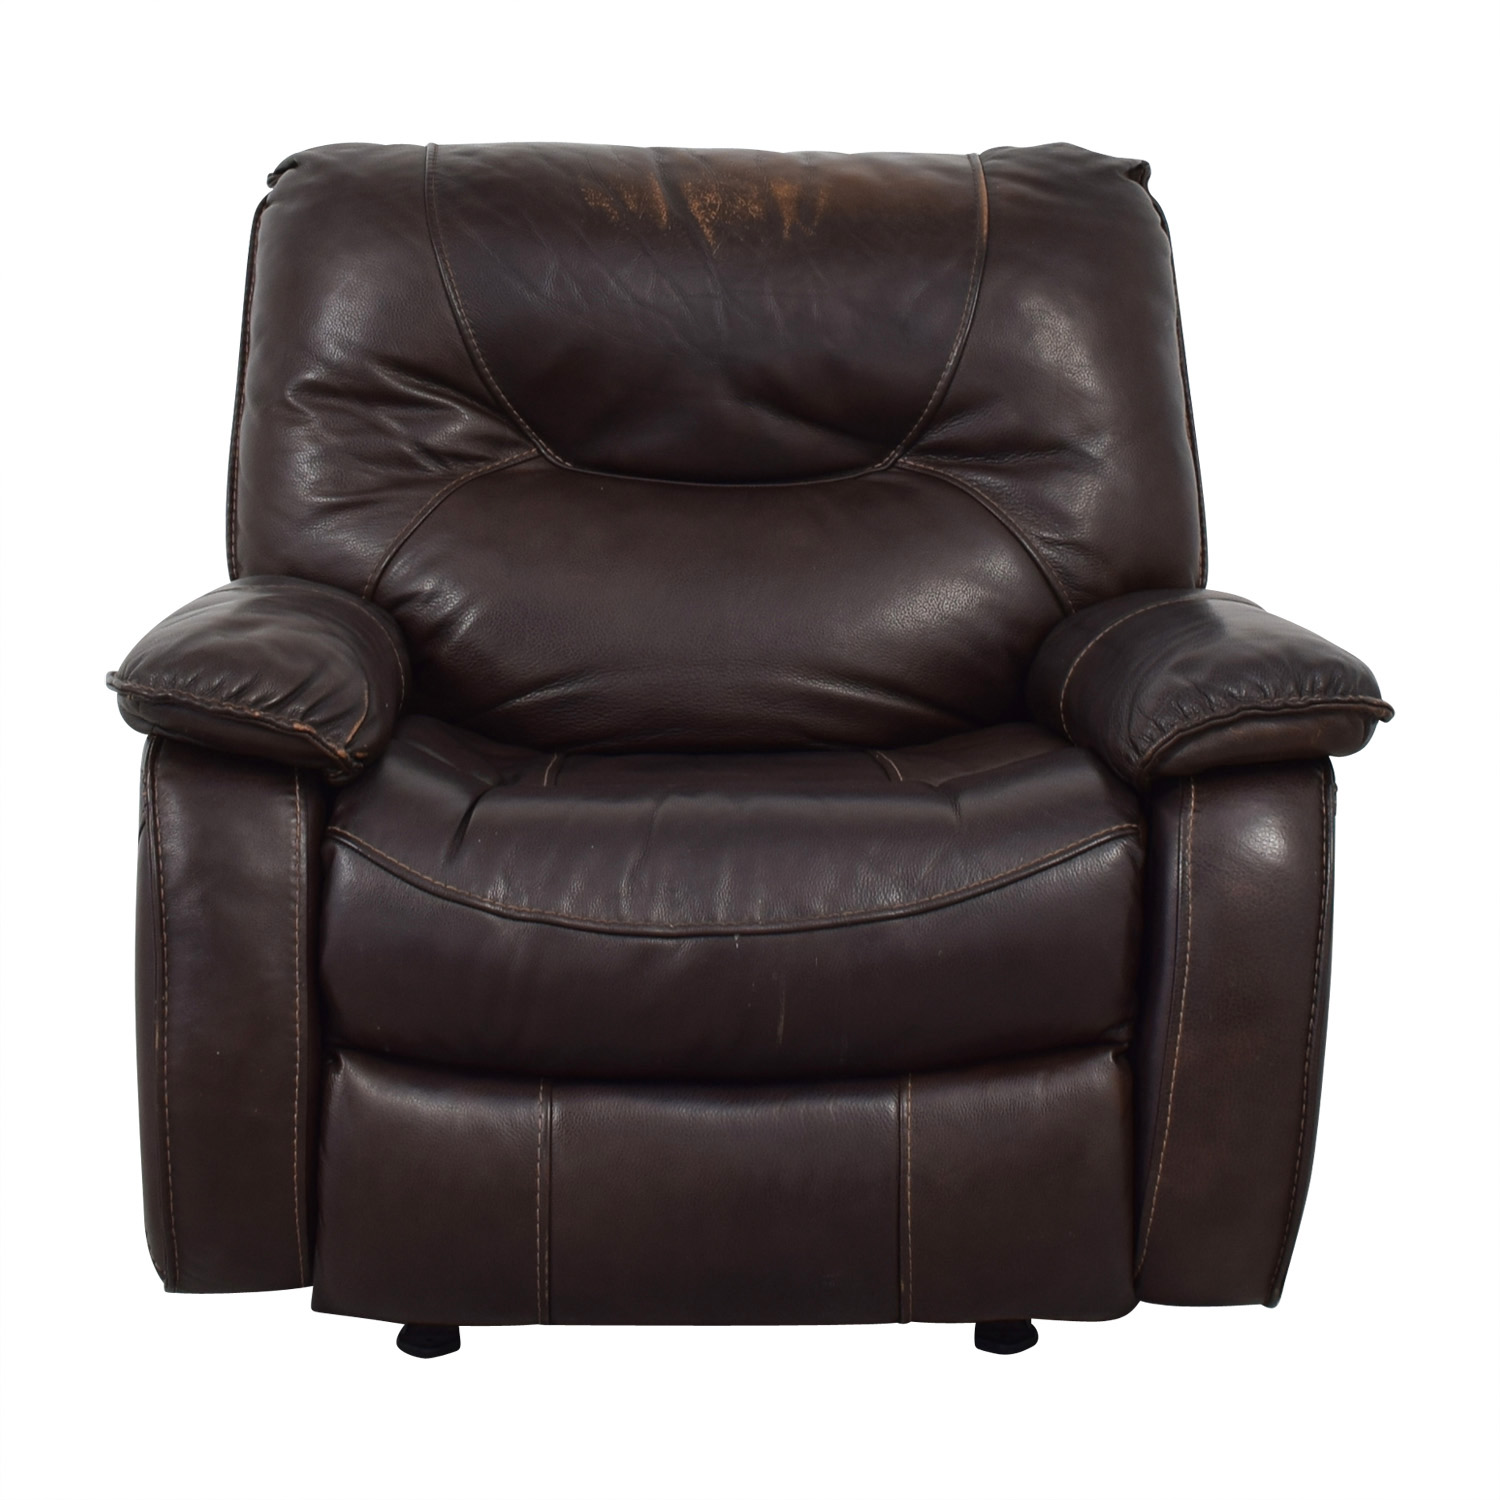 Macys Leather Chair 85 Off Macy S Macy S Brown Leather Recliner Chair Chairs